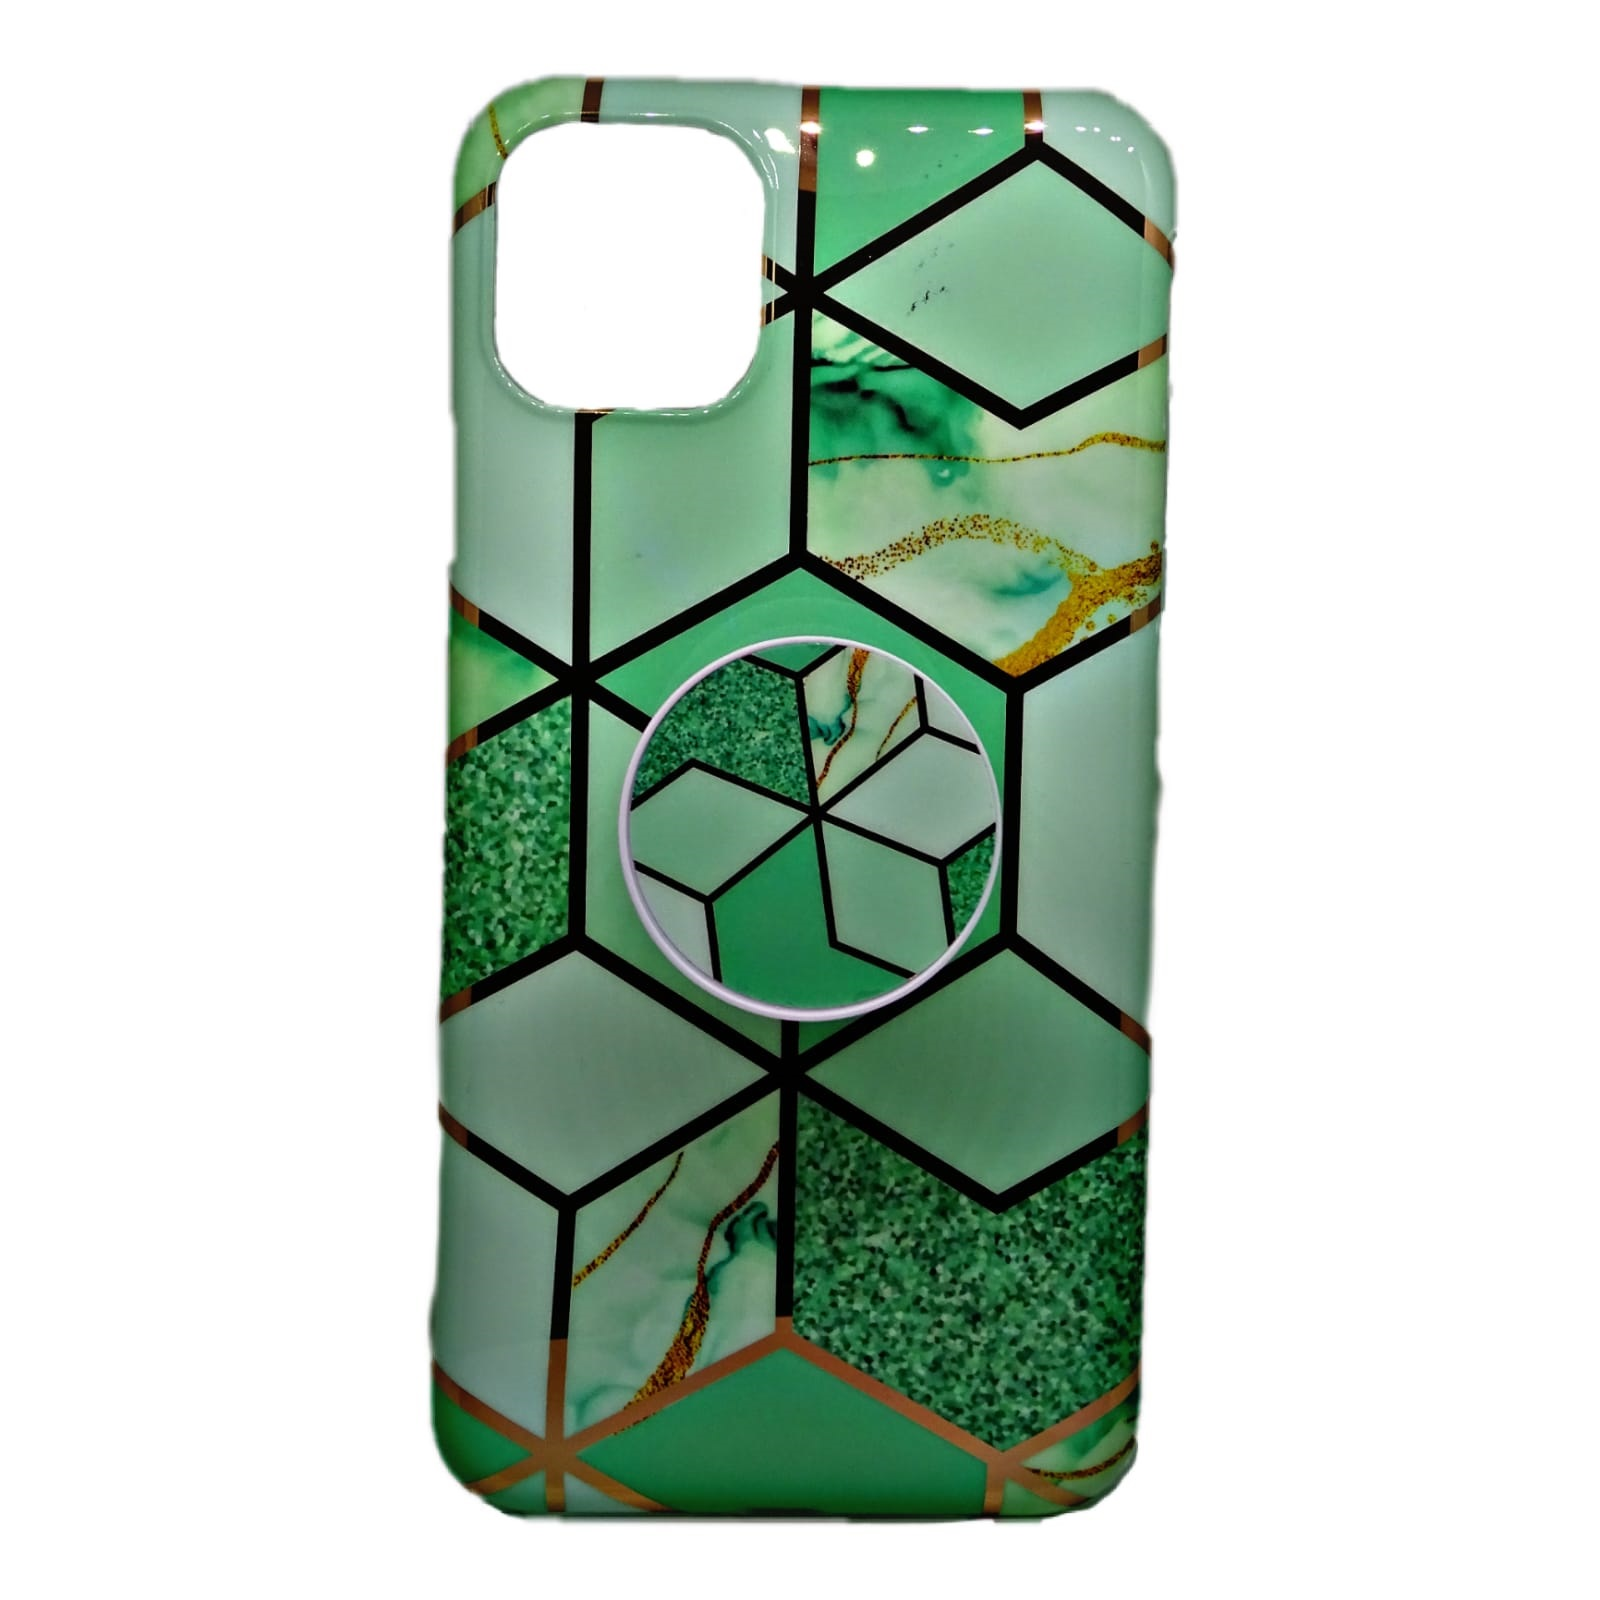 HUSA IPHONE 11 PRO MAX MARBLE SUPORT INCLUS VERDE